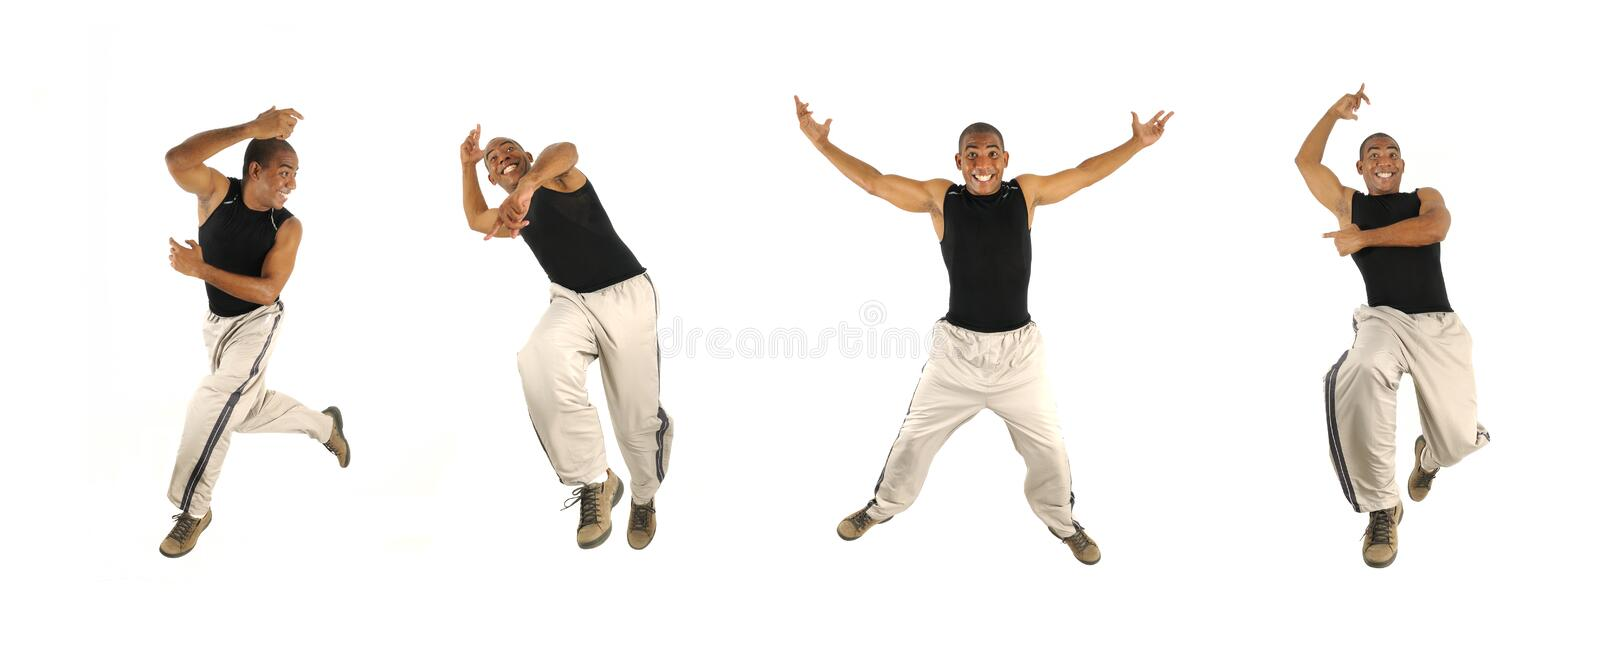 Download African Man Jumping In 4 Poses Stock Image - Image: 12285441